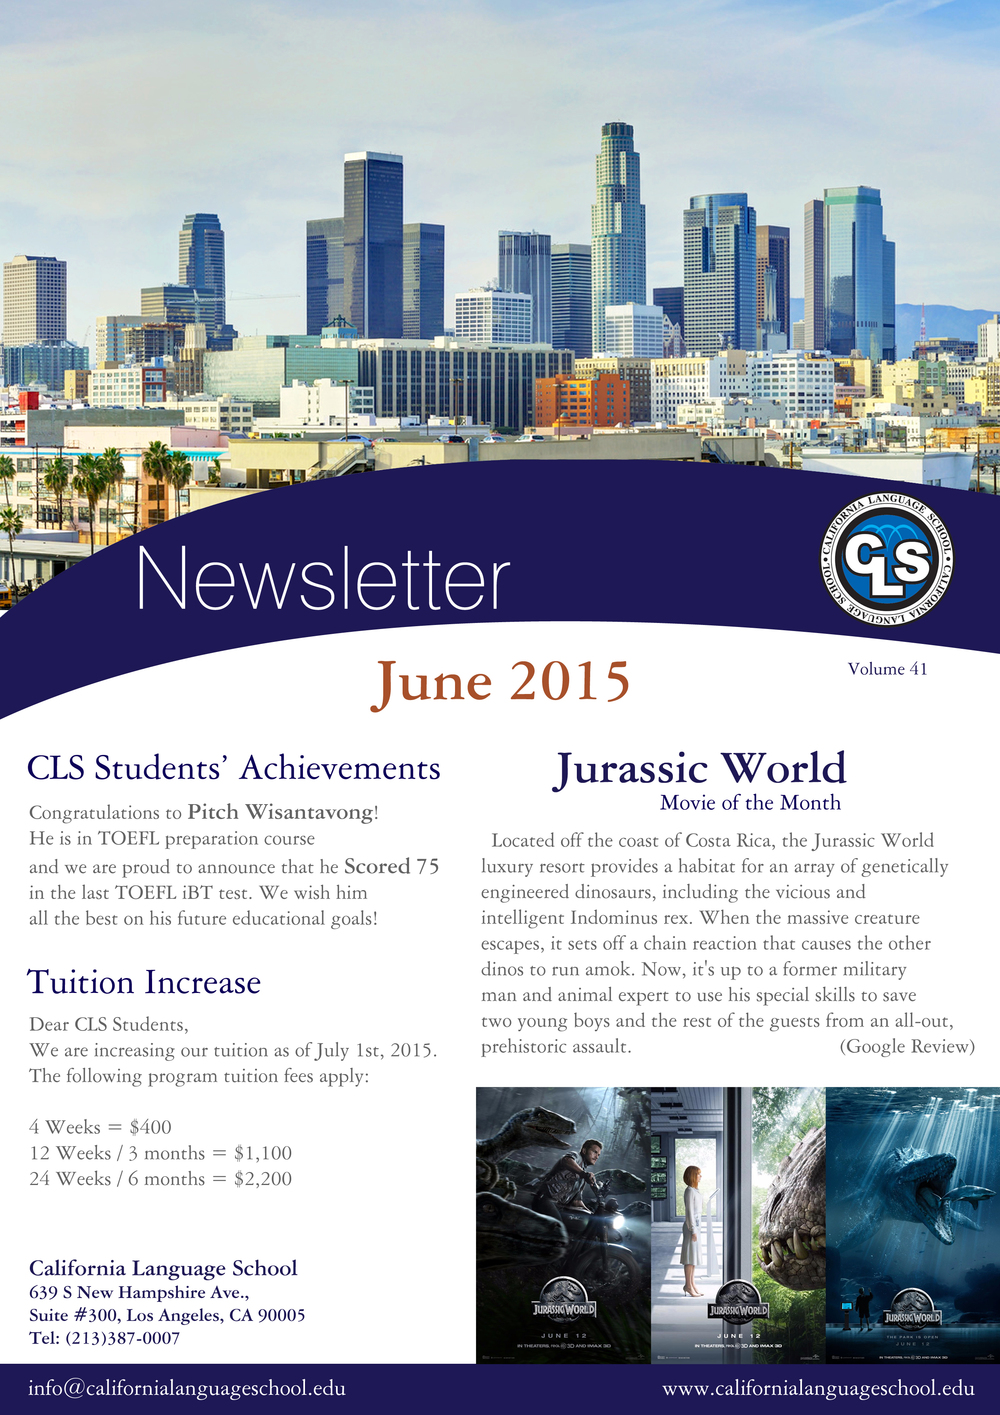 newsletter_june15_cls